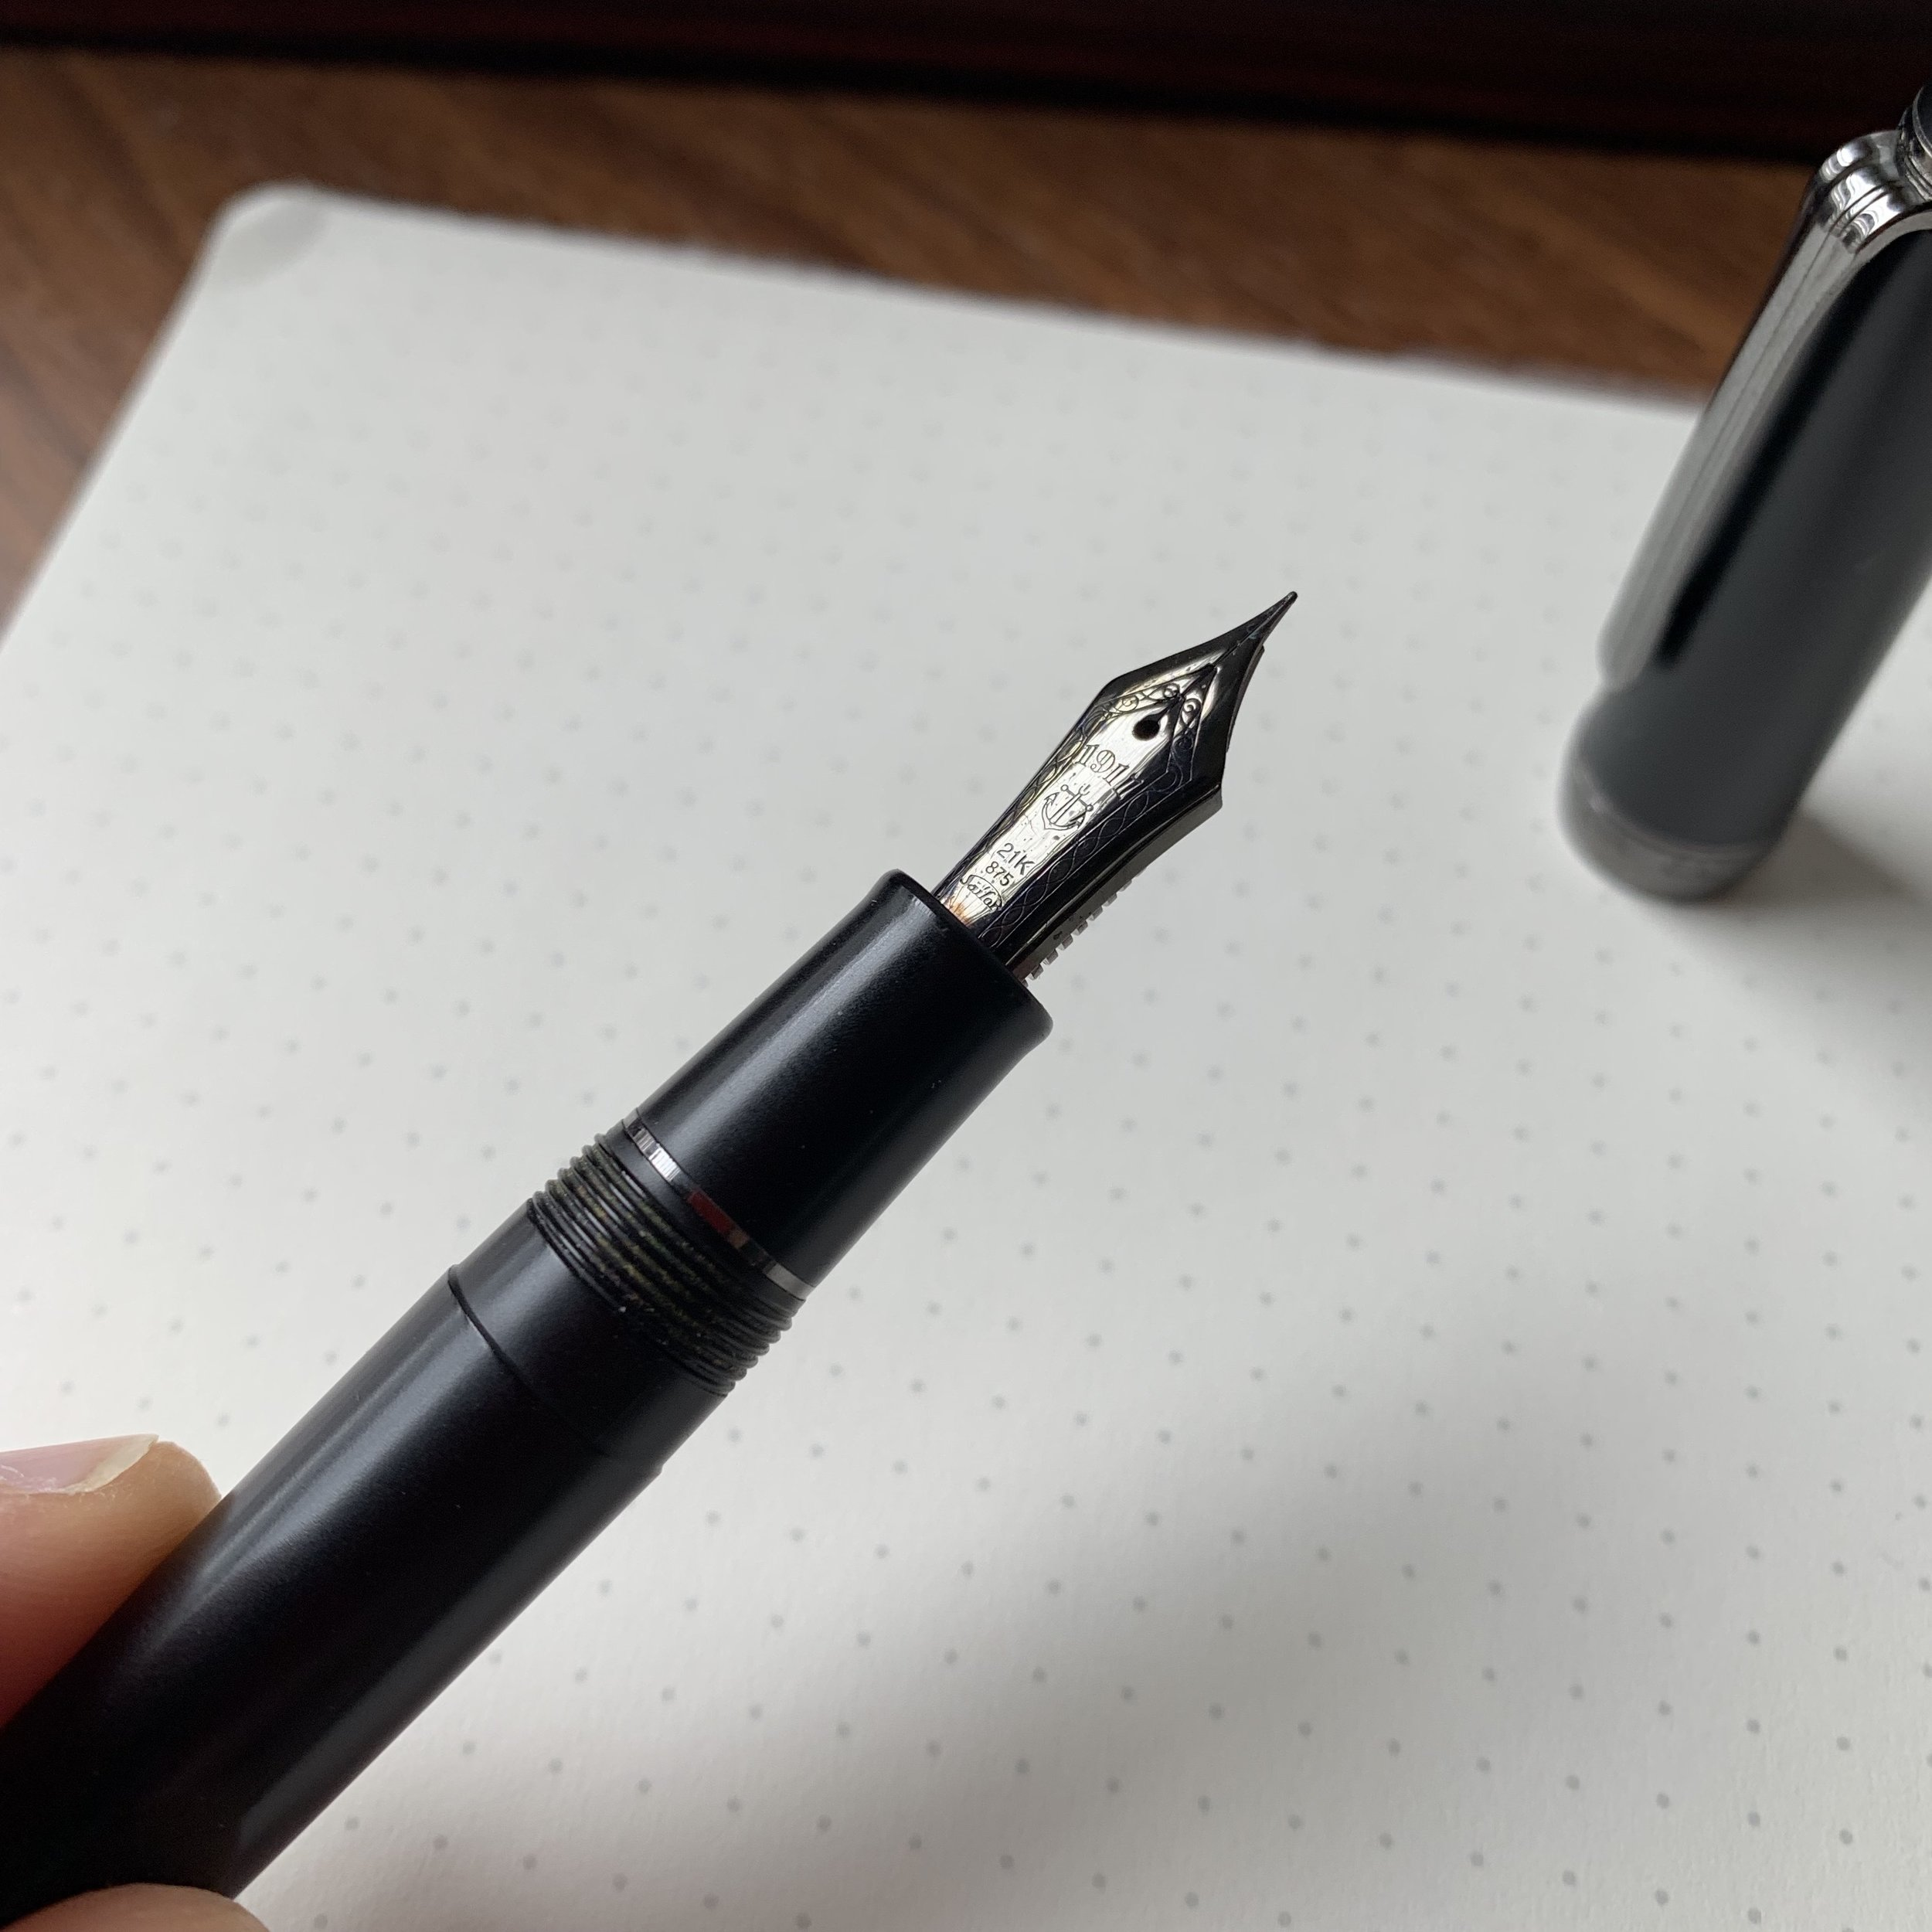 Both the strength and the weakness, the plated 21k nib is an exceptional writer and looks great, but, at least in the fine width, can easily be sprung, and the plating can wear off if you grind the nib.